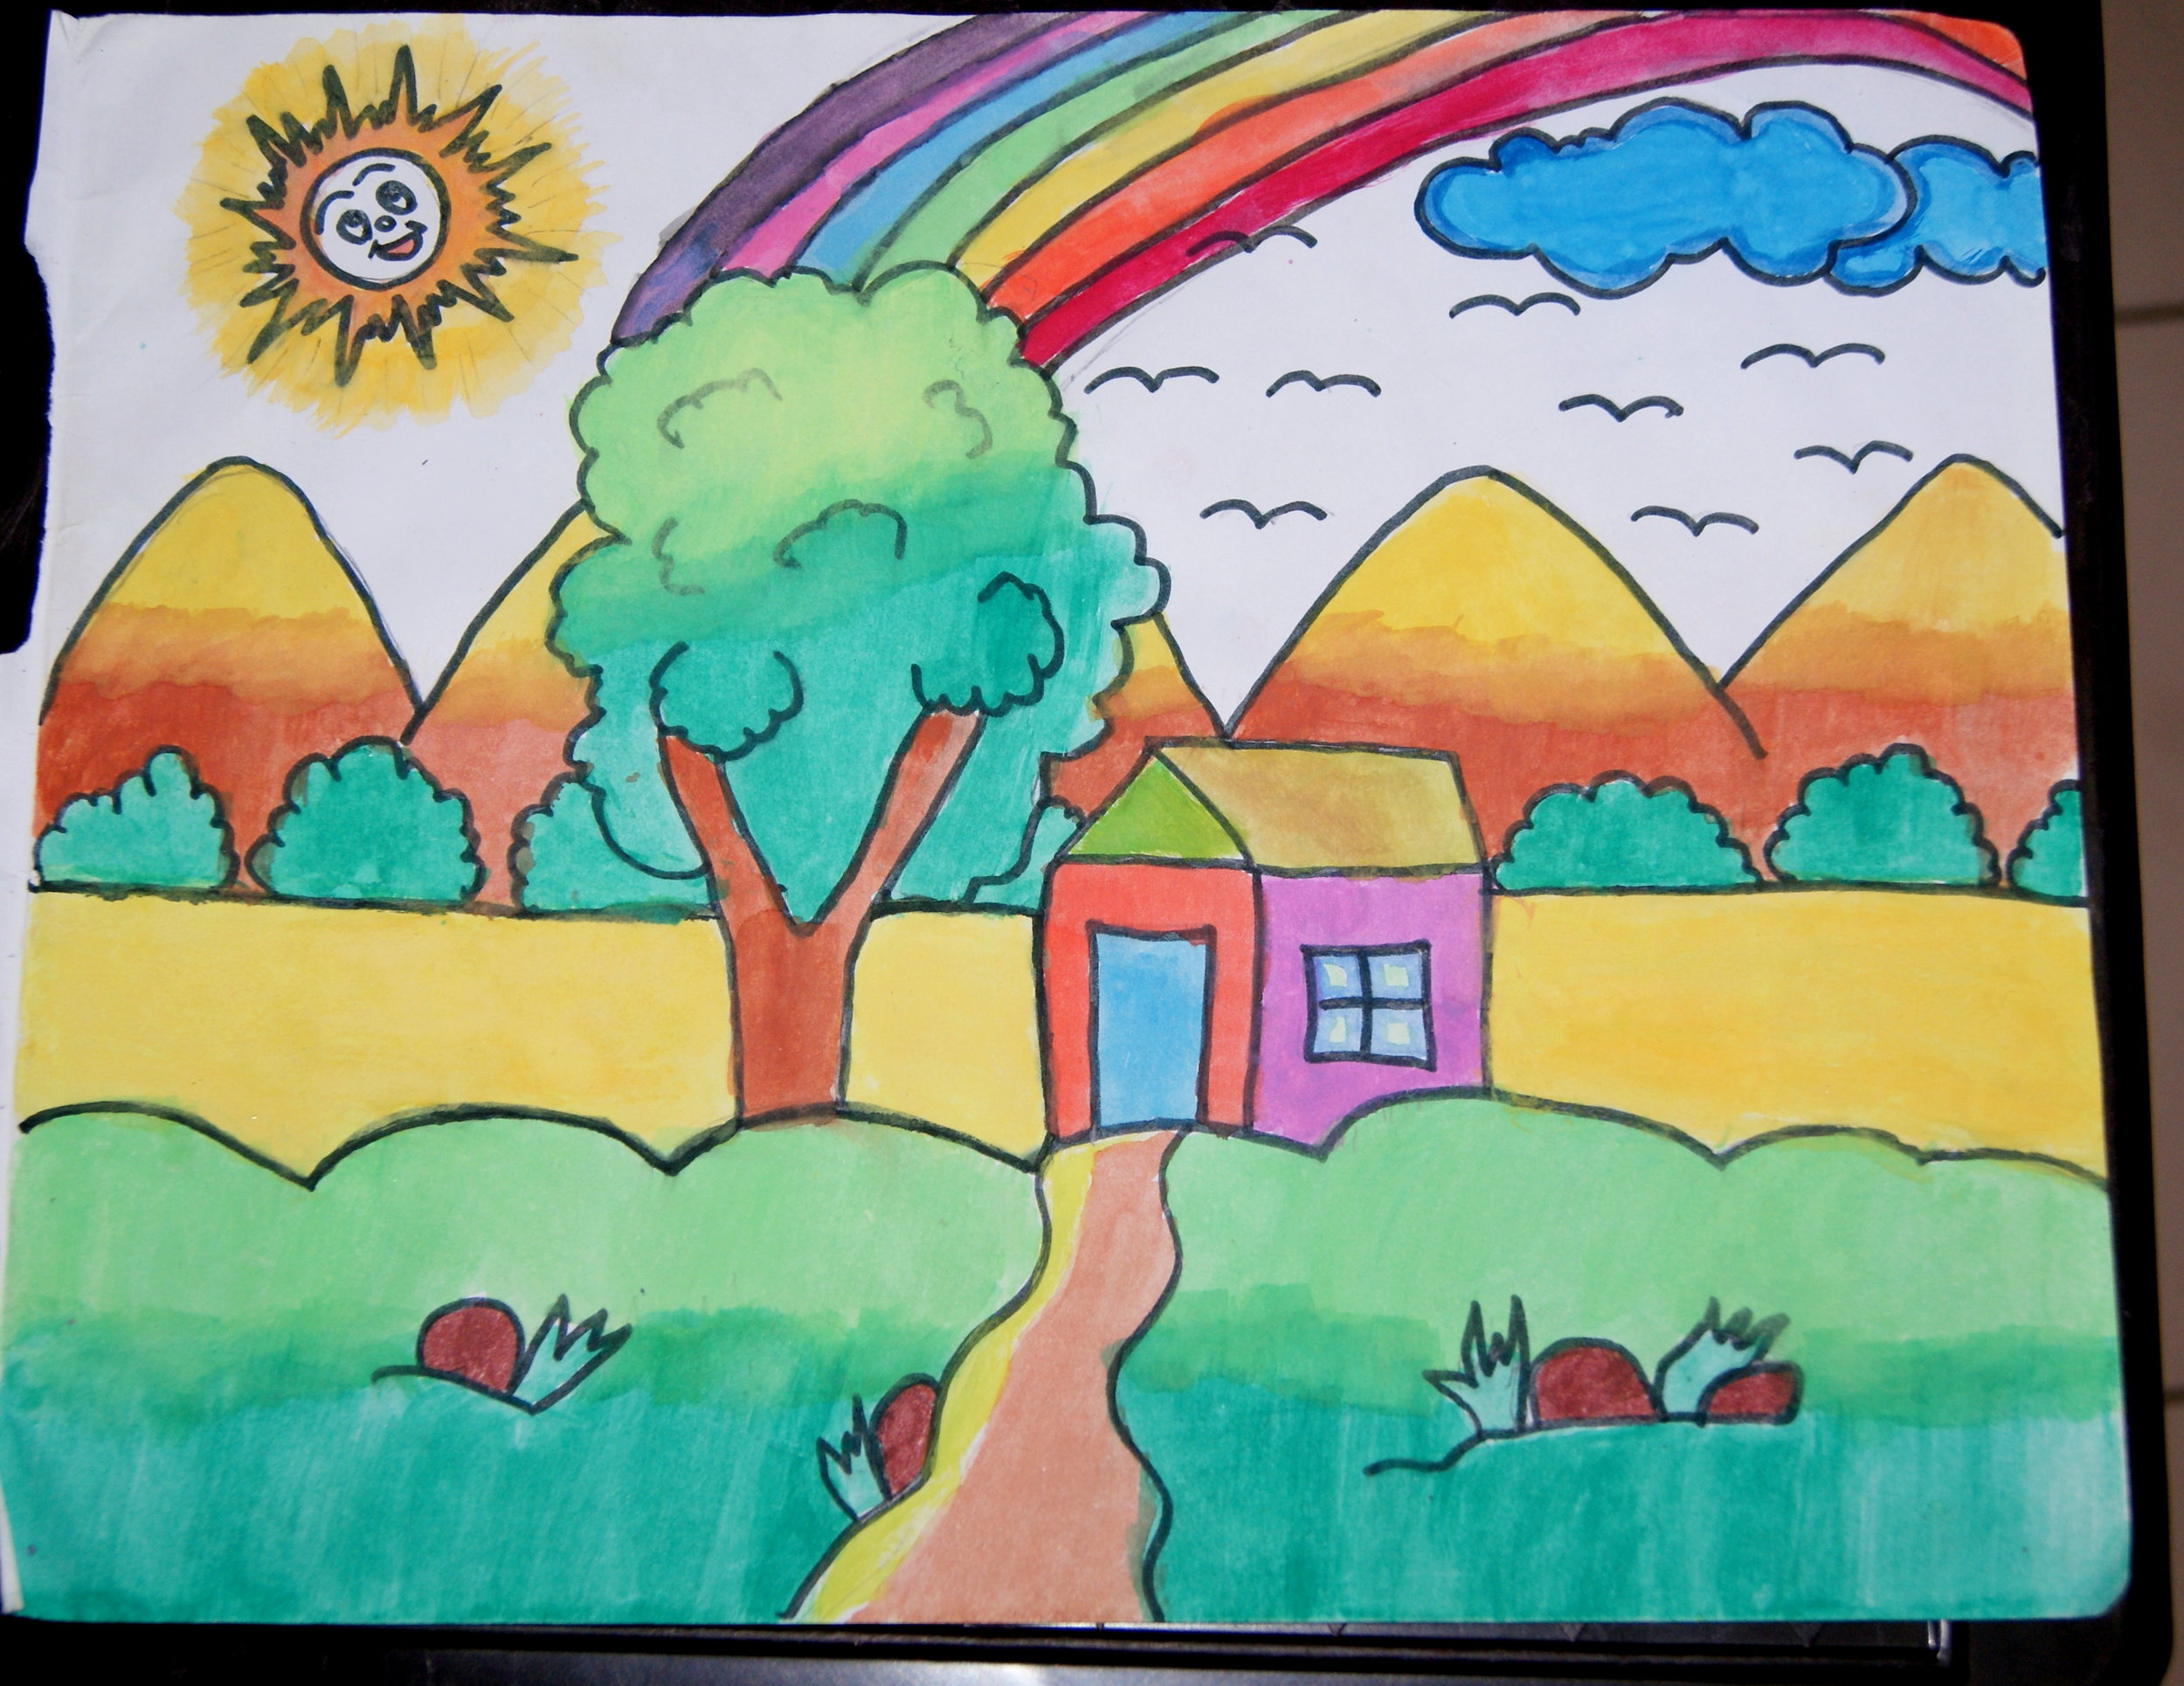 Art submitted to us by Pankh - The Creative School in November 2017 . Drawn by one of their youth artists.